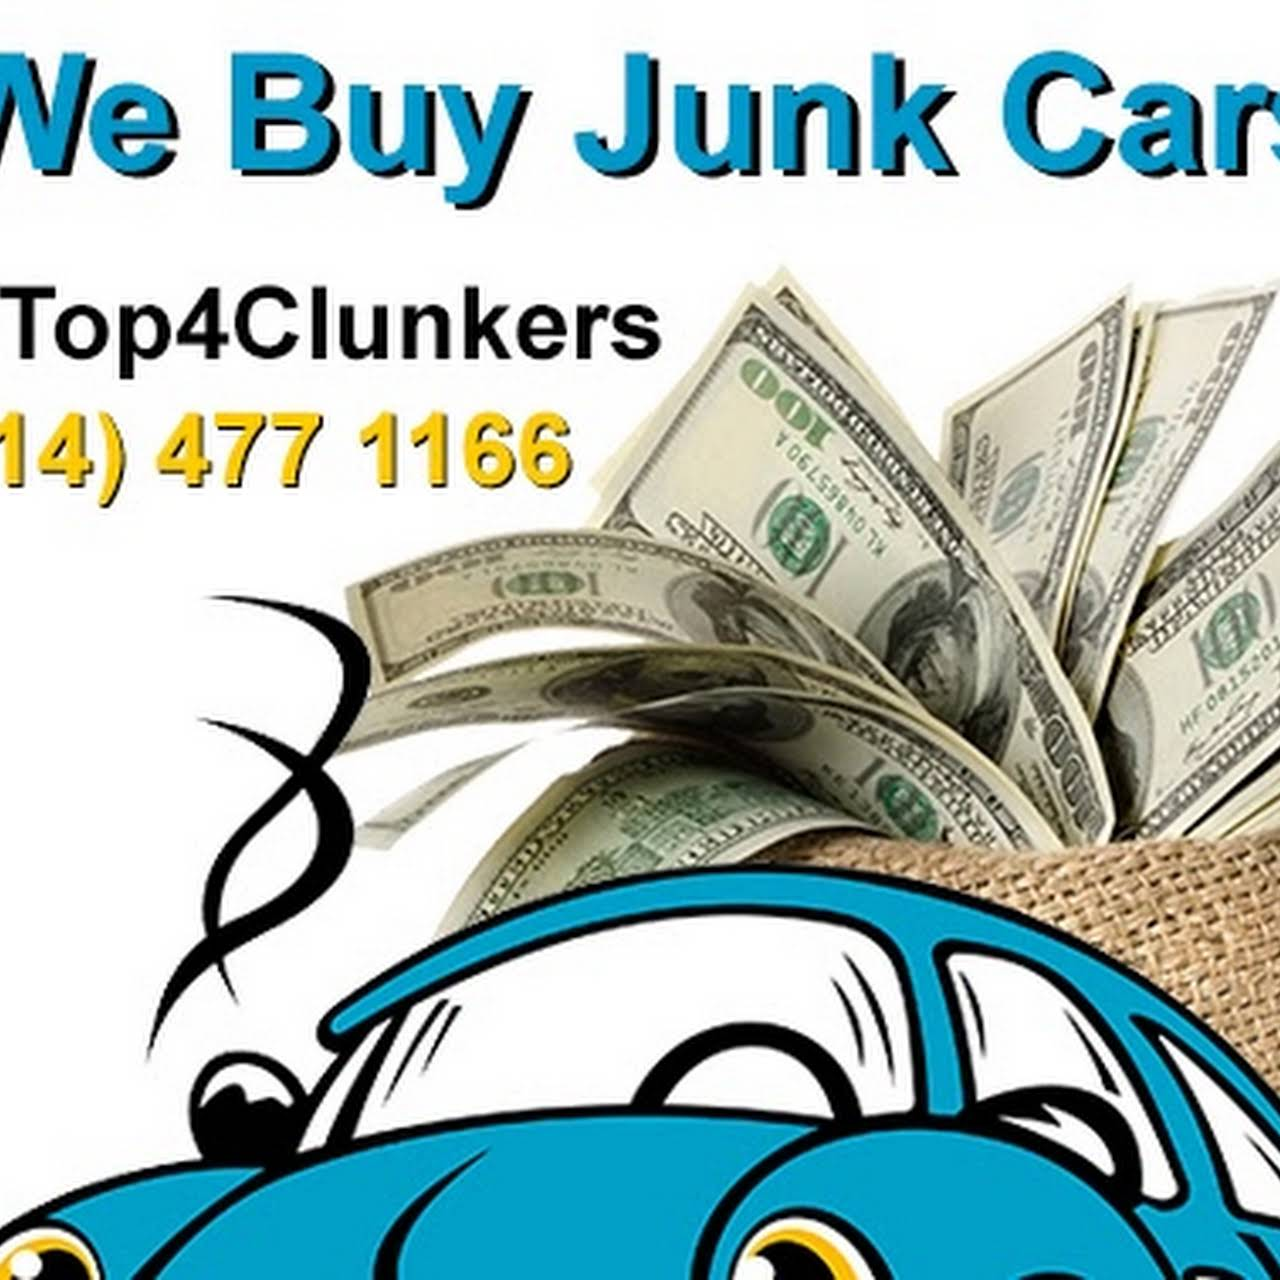 PayTop4Clunkers - Local junkyard in Columbus Ohio buying junk cars ...